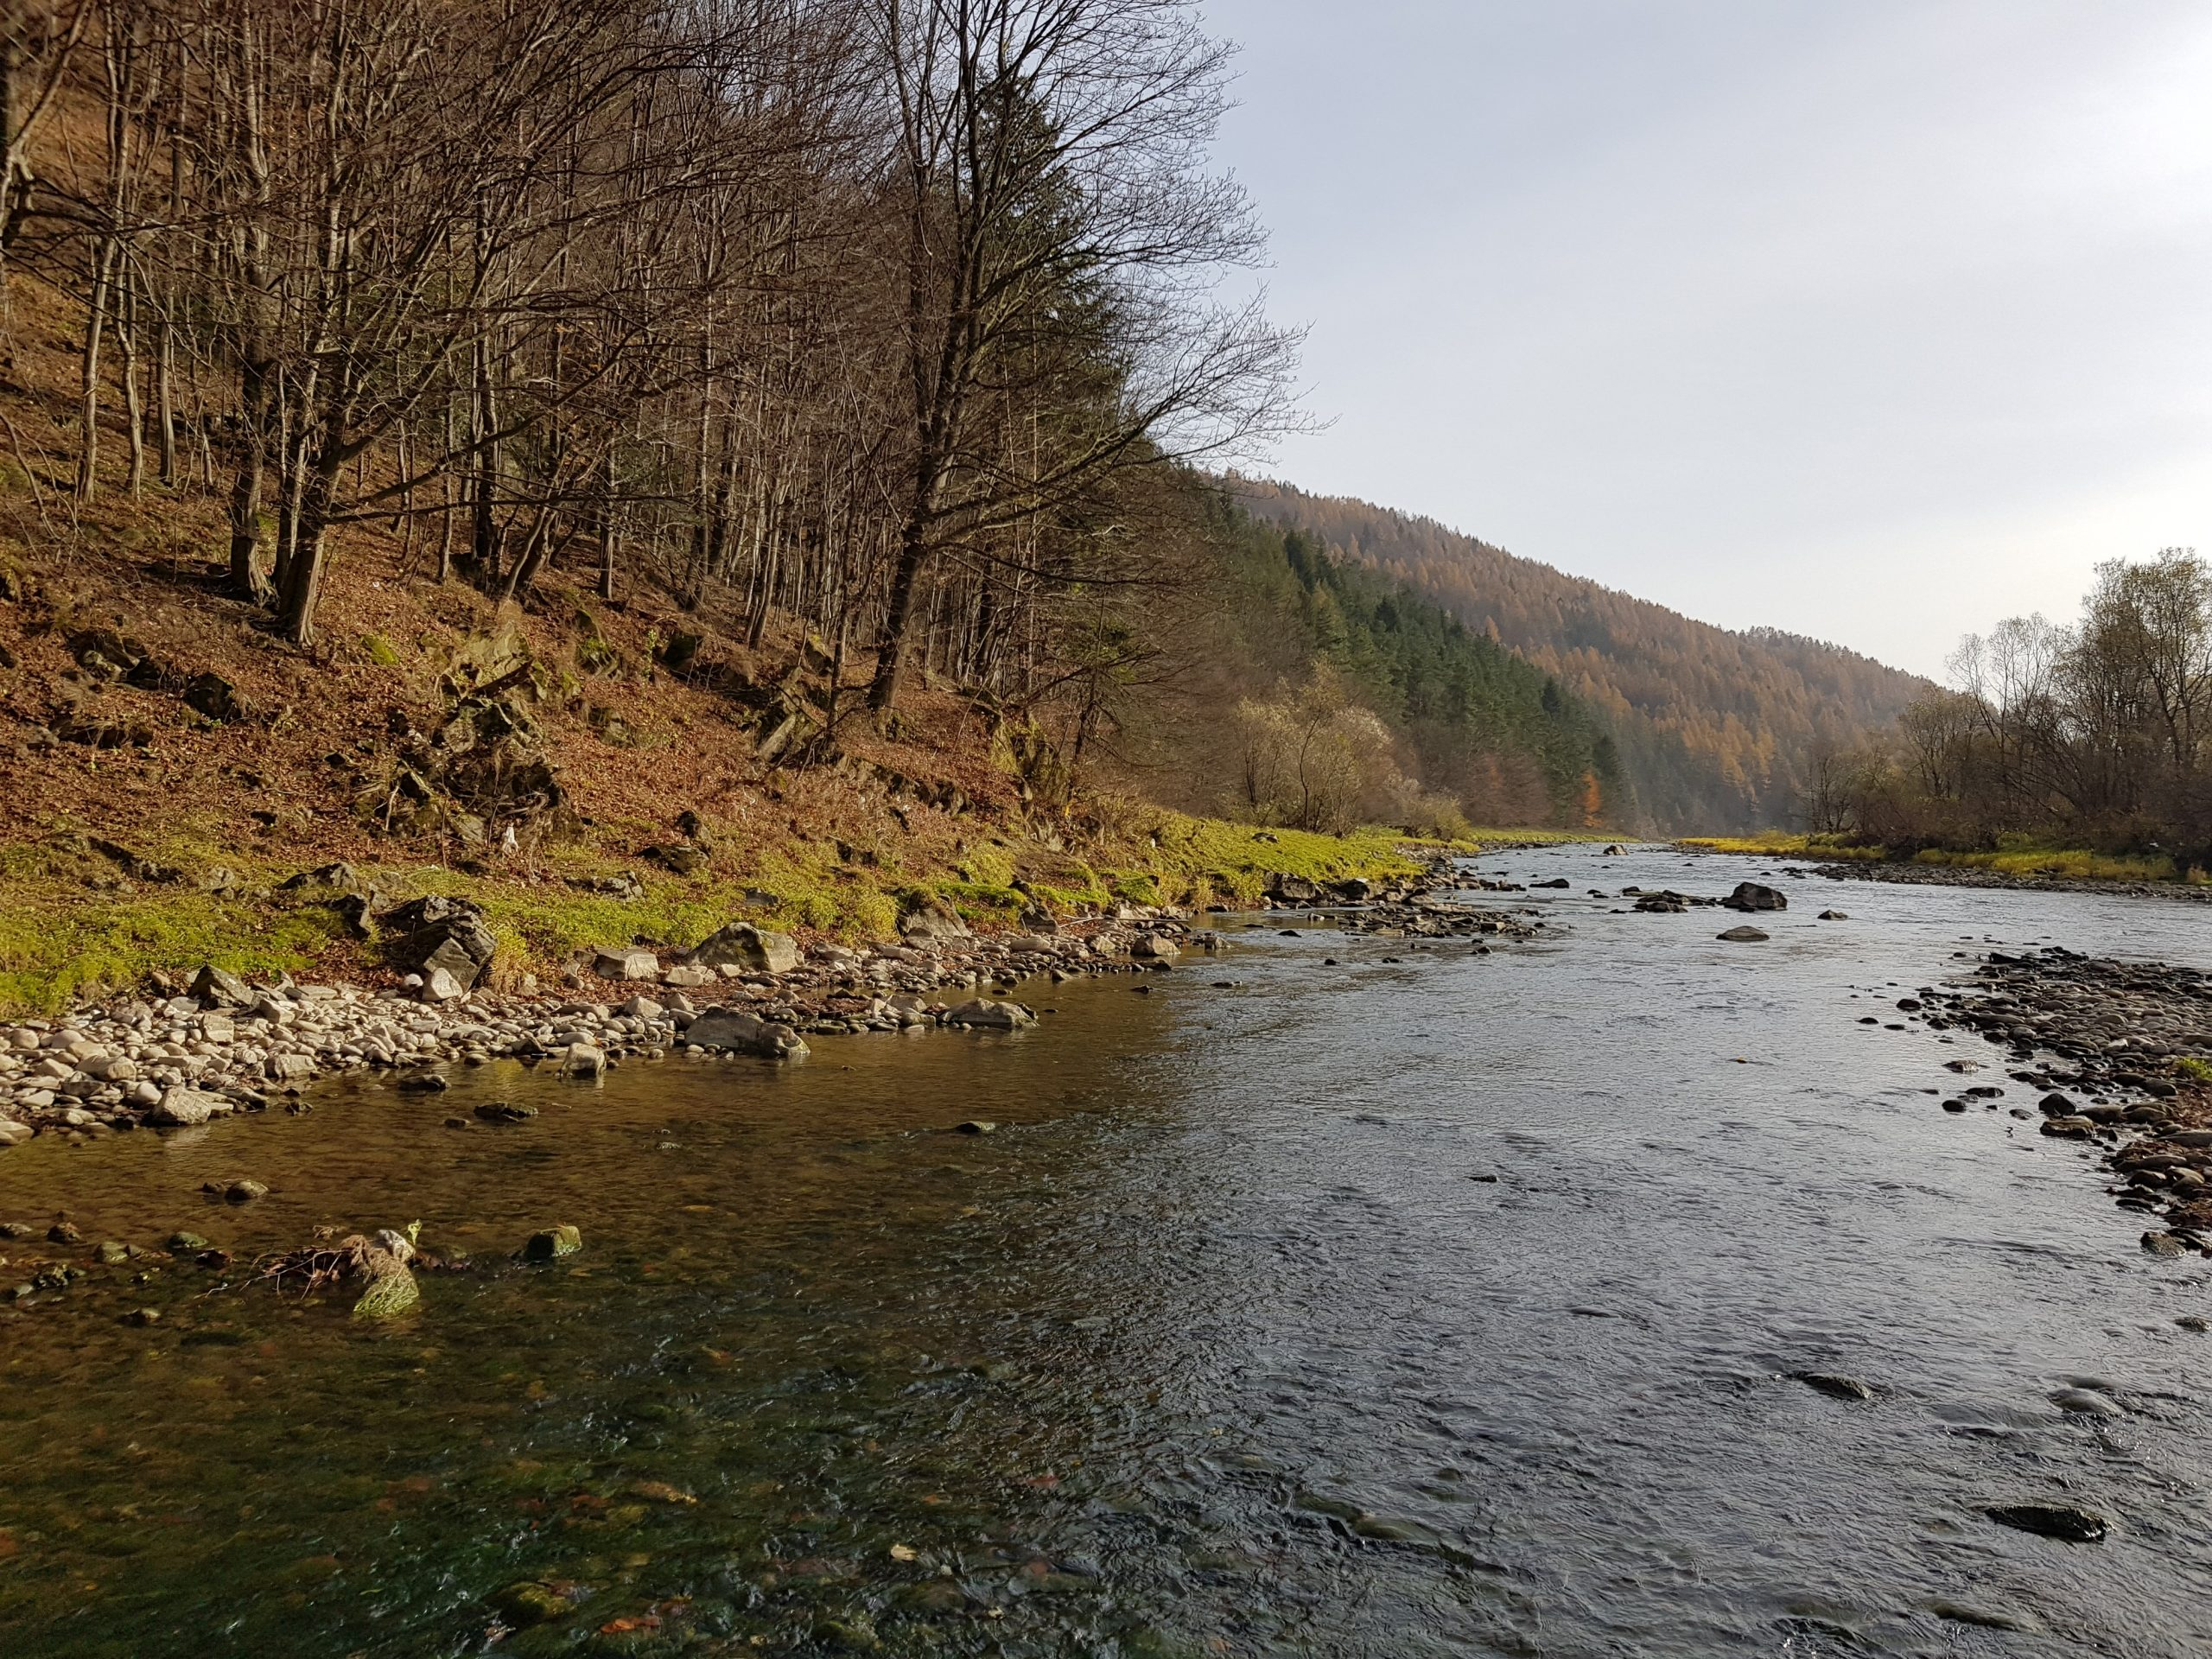 Autumn, low water level ideal for grayling fishing